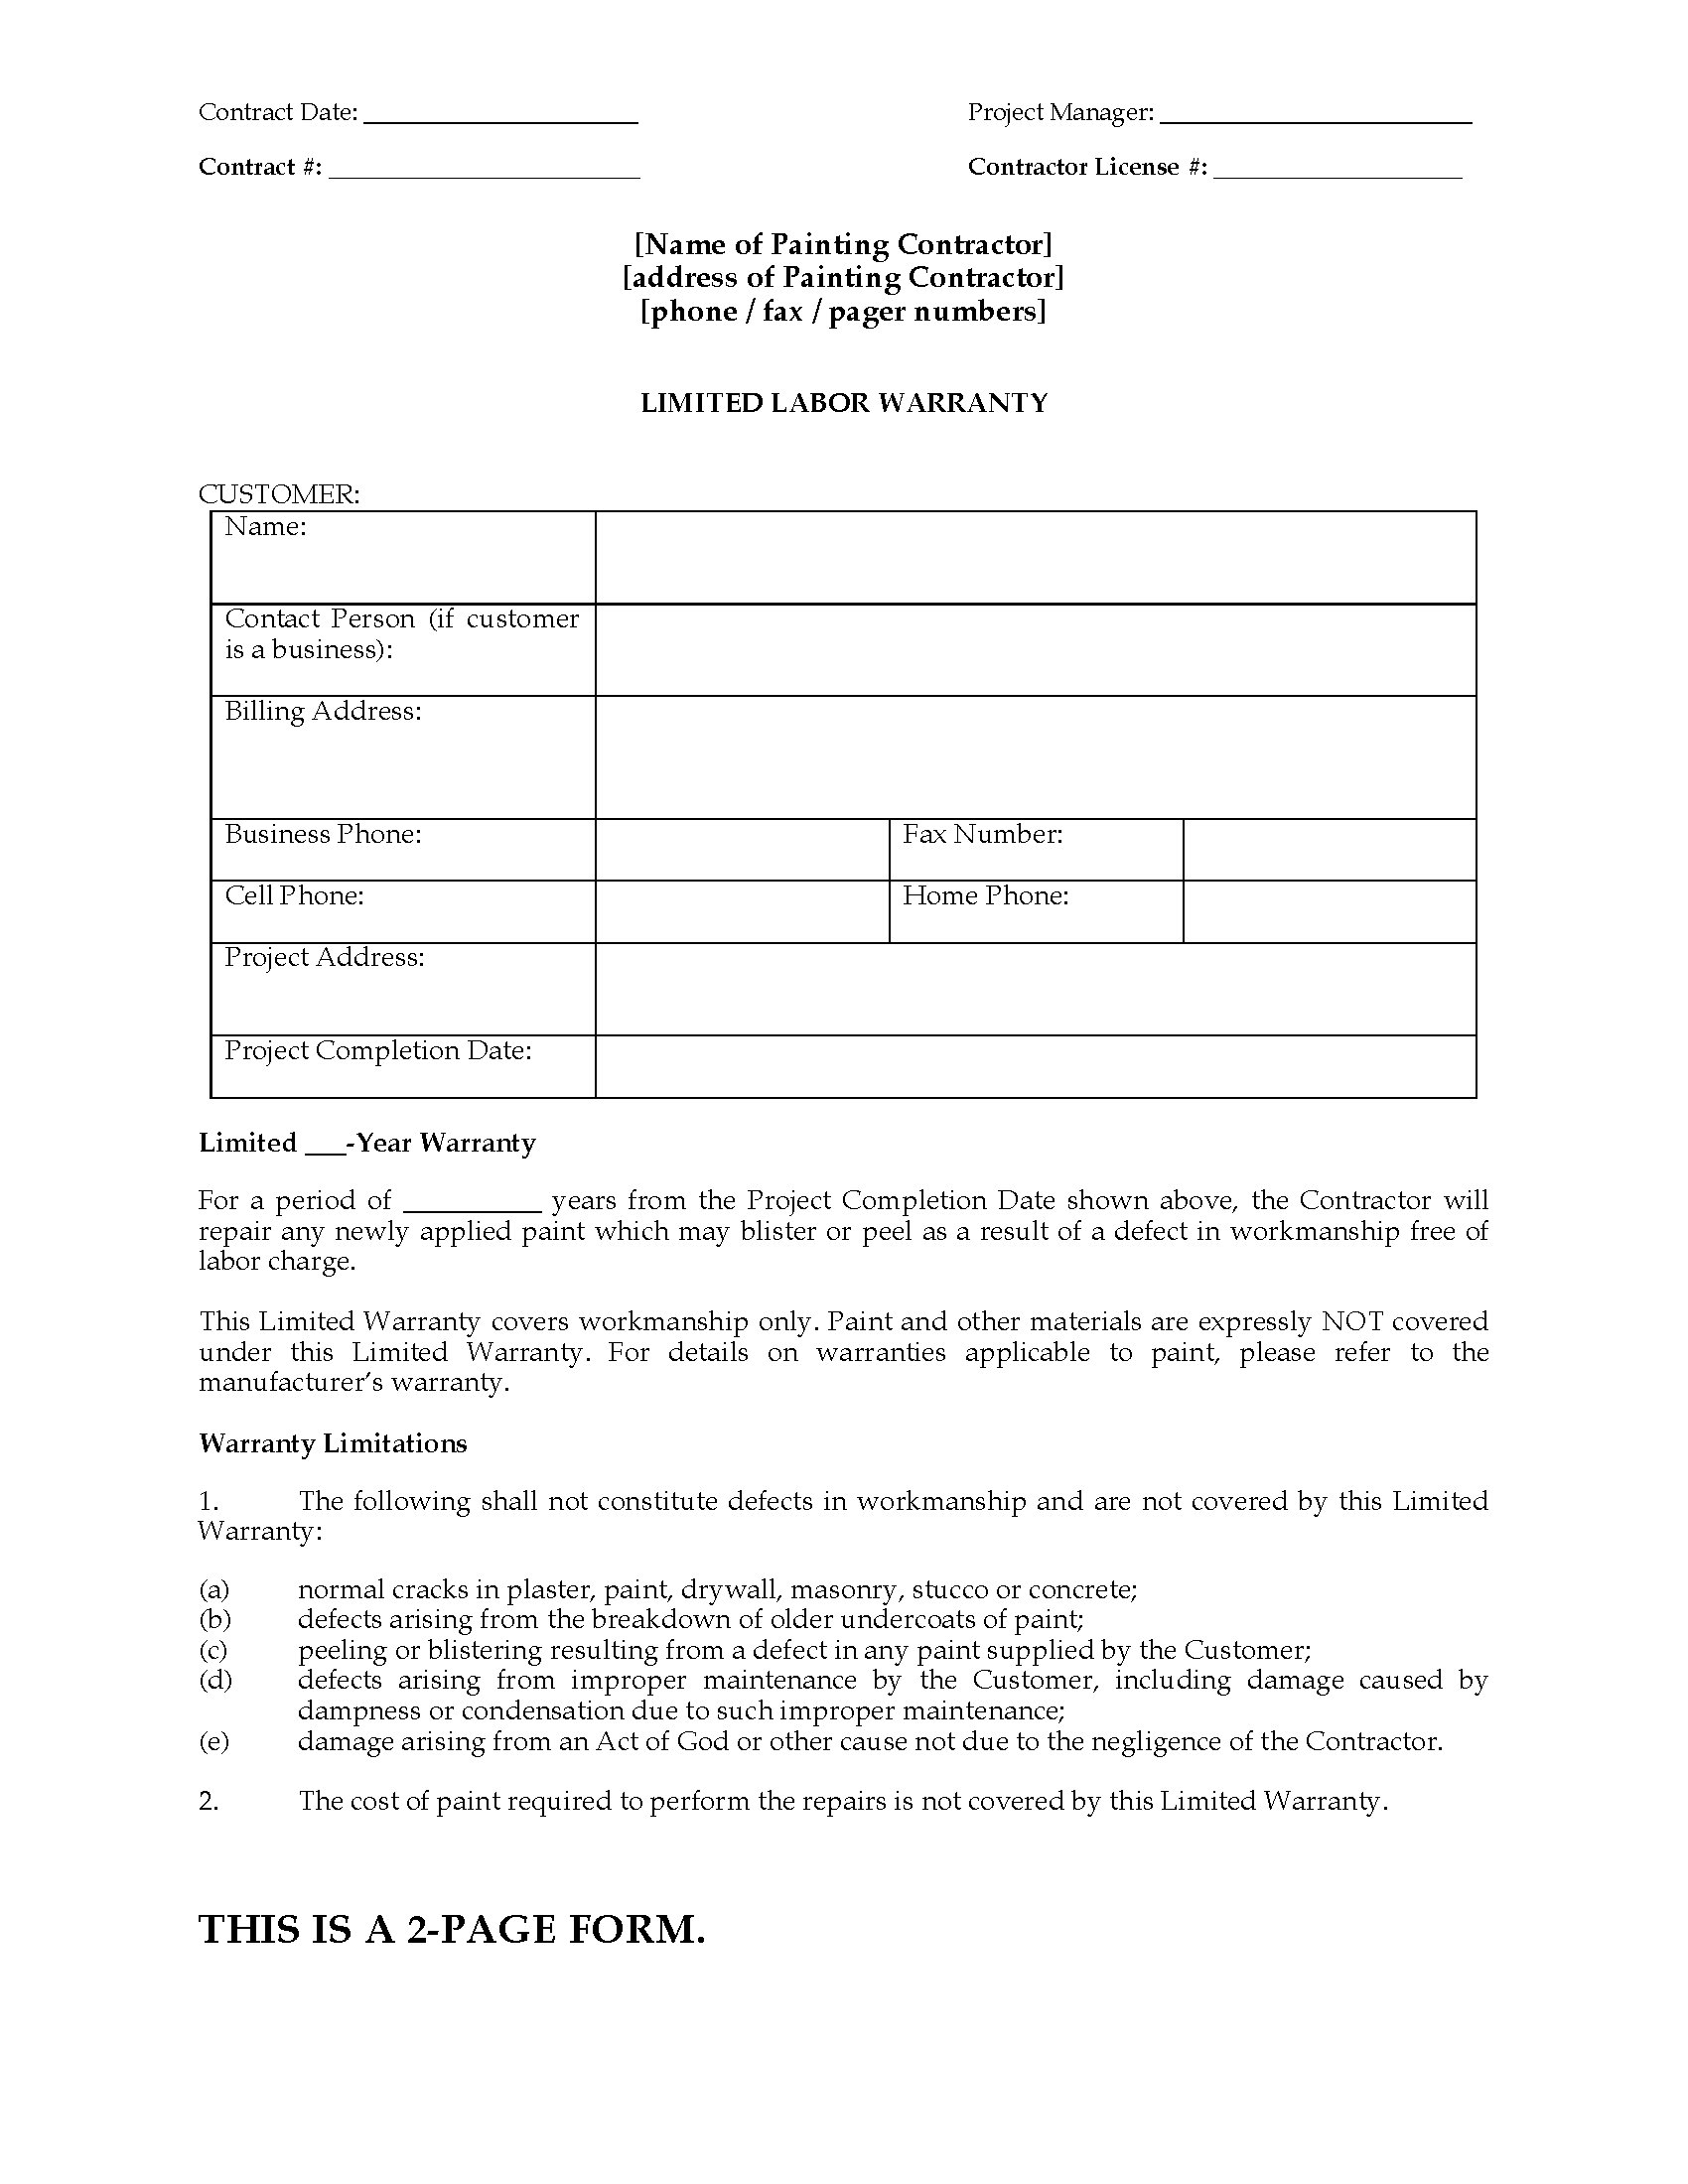 Painting Limited Warranty Certificate Form